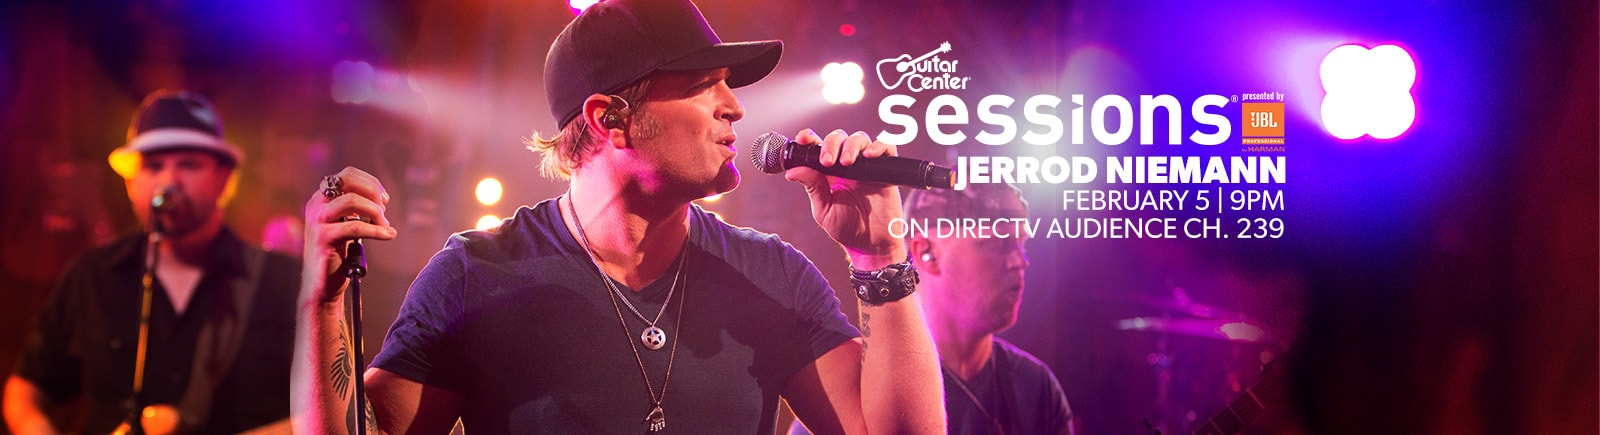 Sessions: Jerrod Niemann